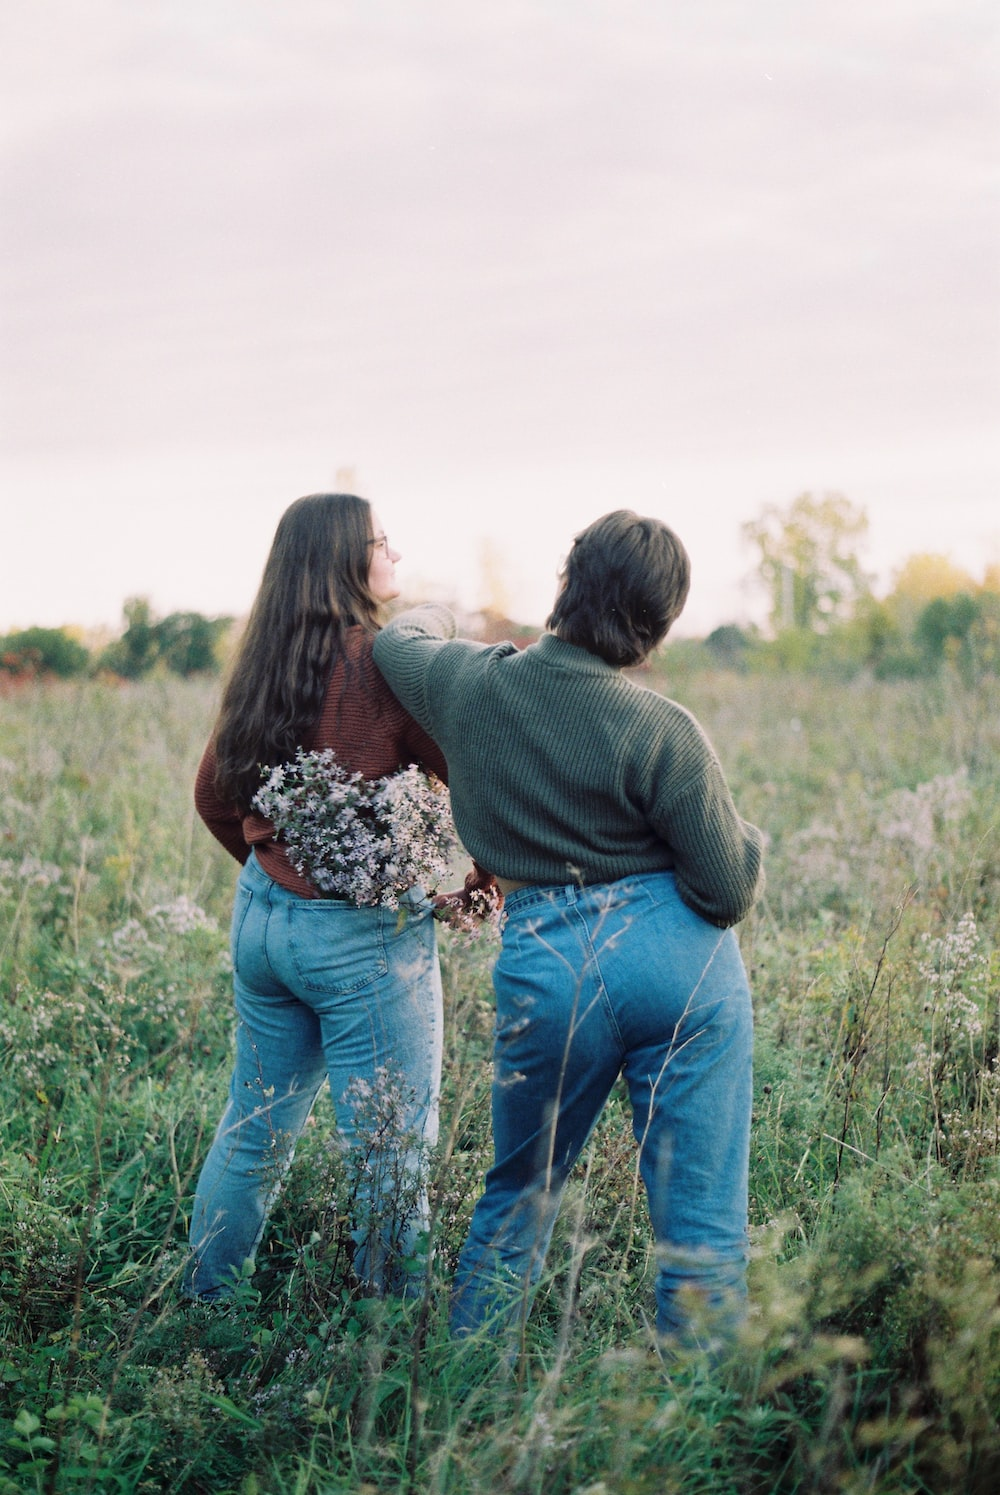 couple kissing on green grass field during daytime